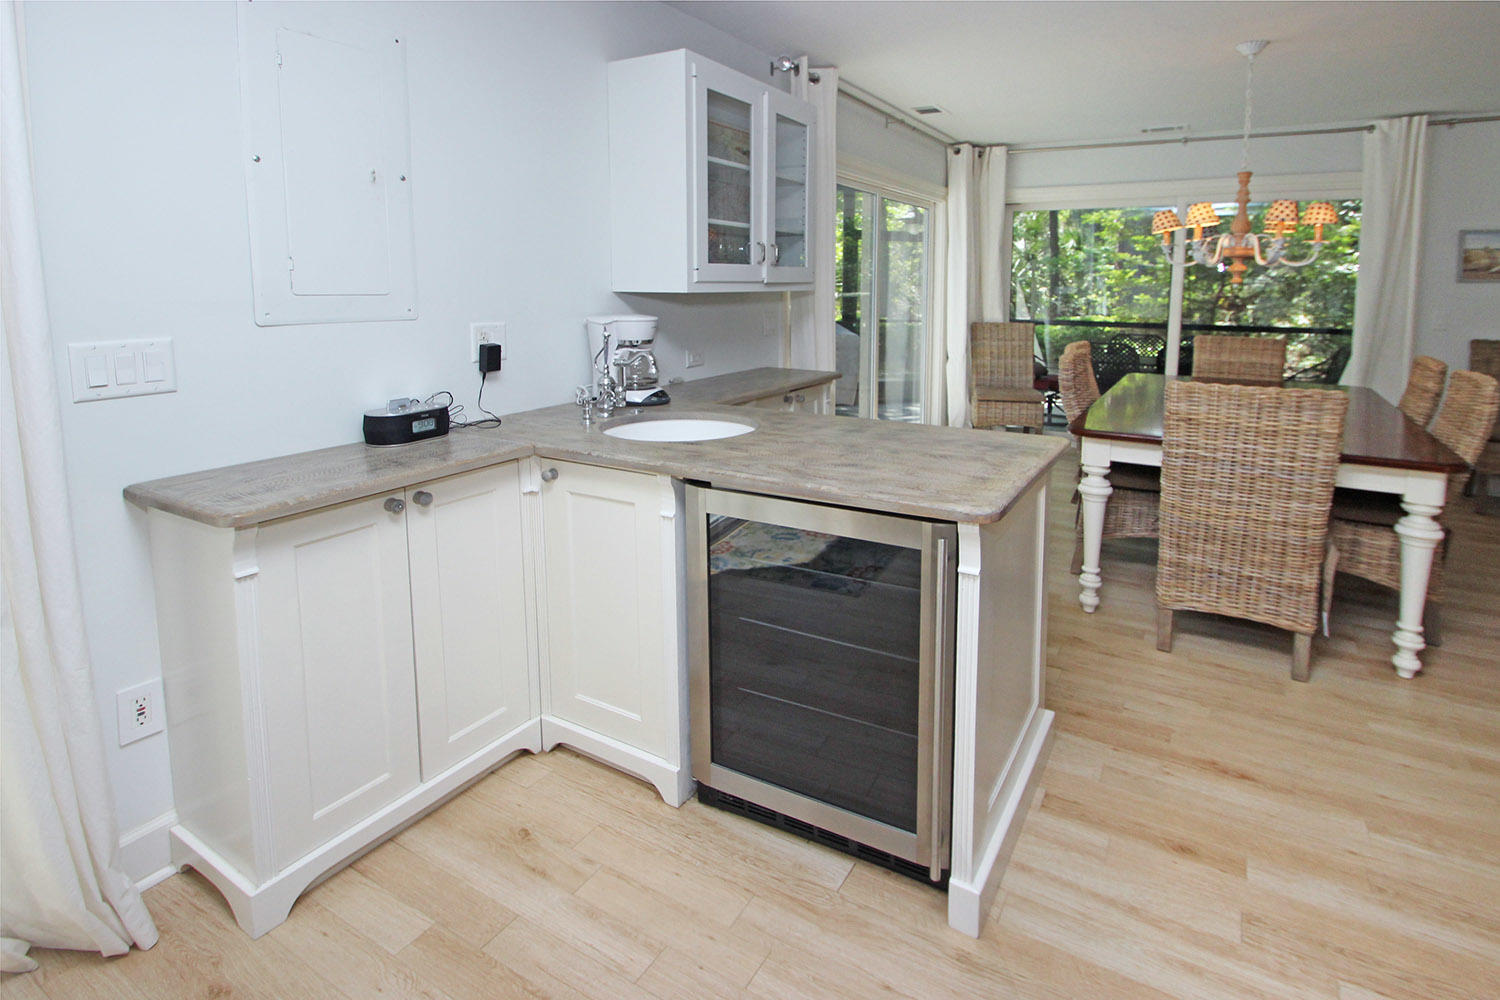 Wet bar by kitchen and dining area